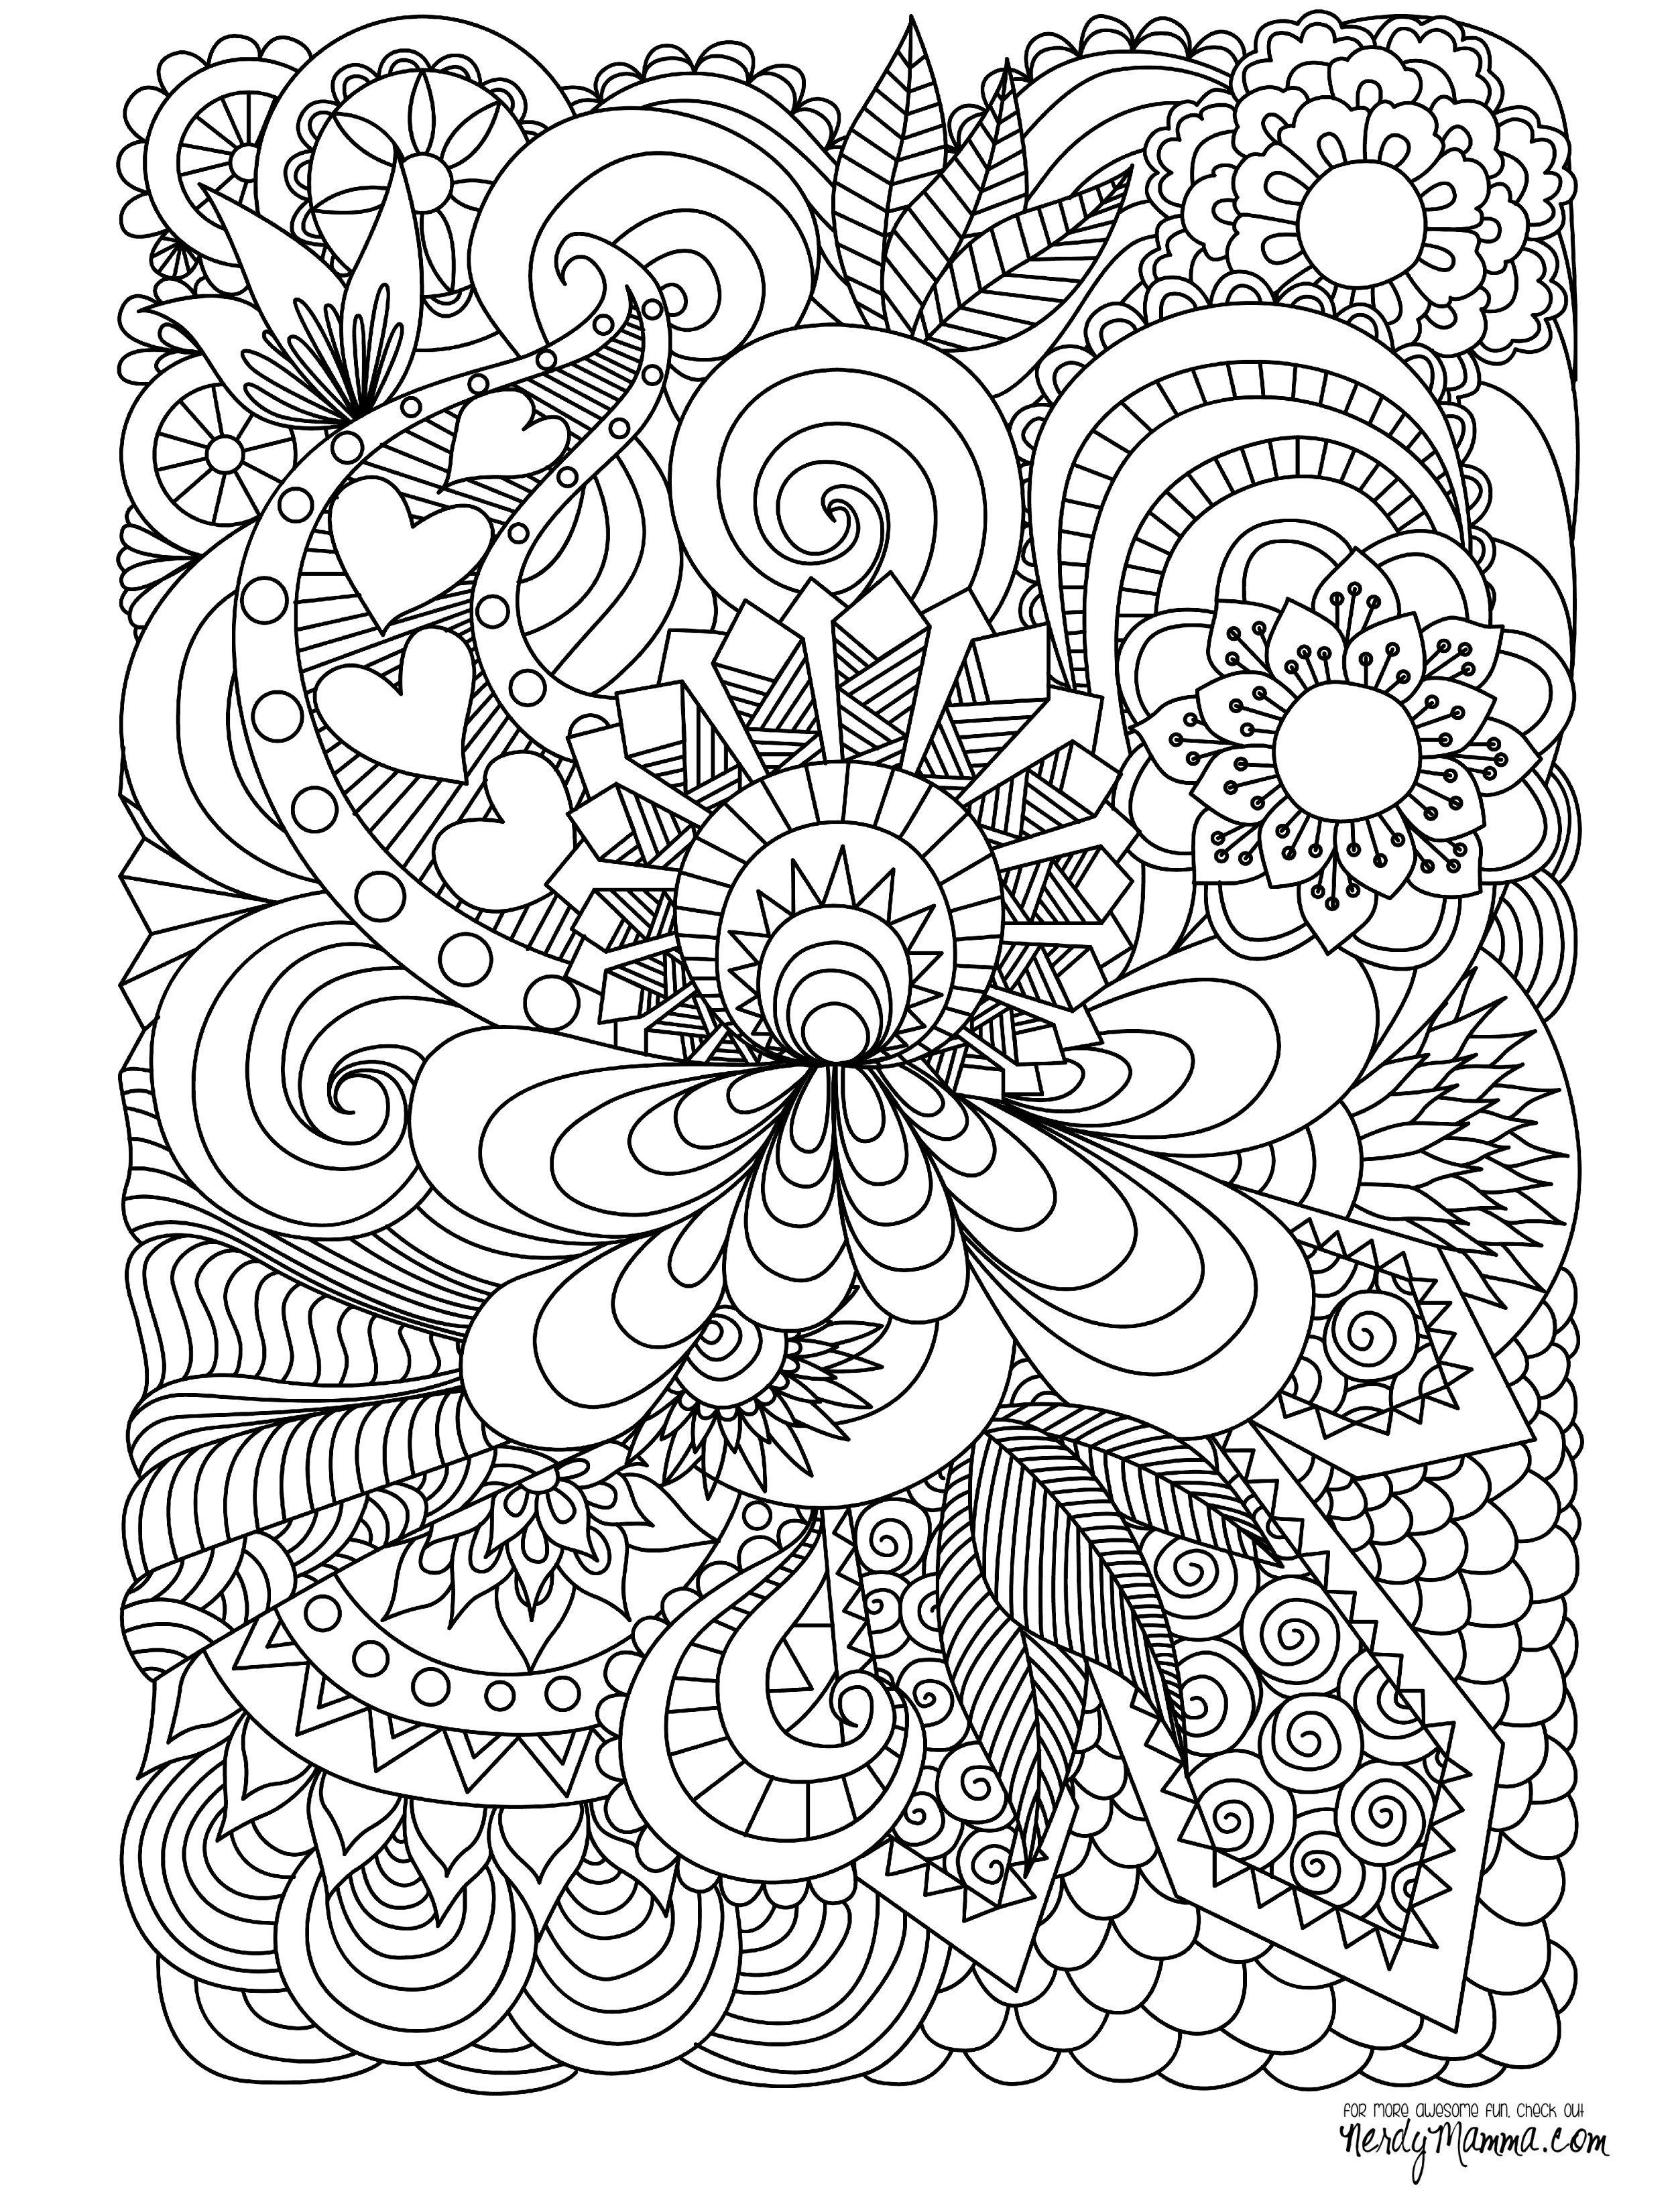 Free April and May Coloring Pages for Spring | Spring coloring ... | 3300x2500